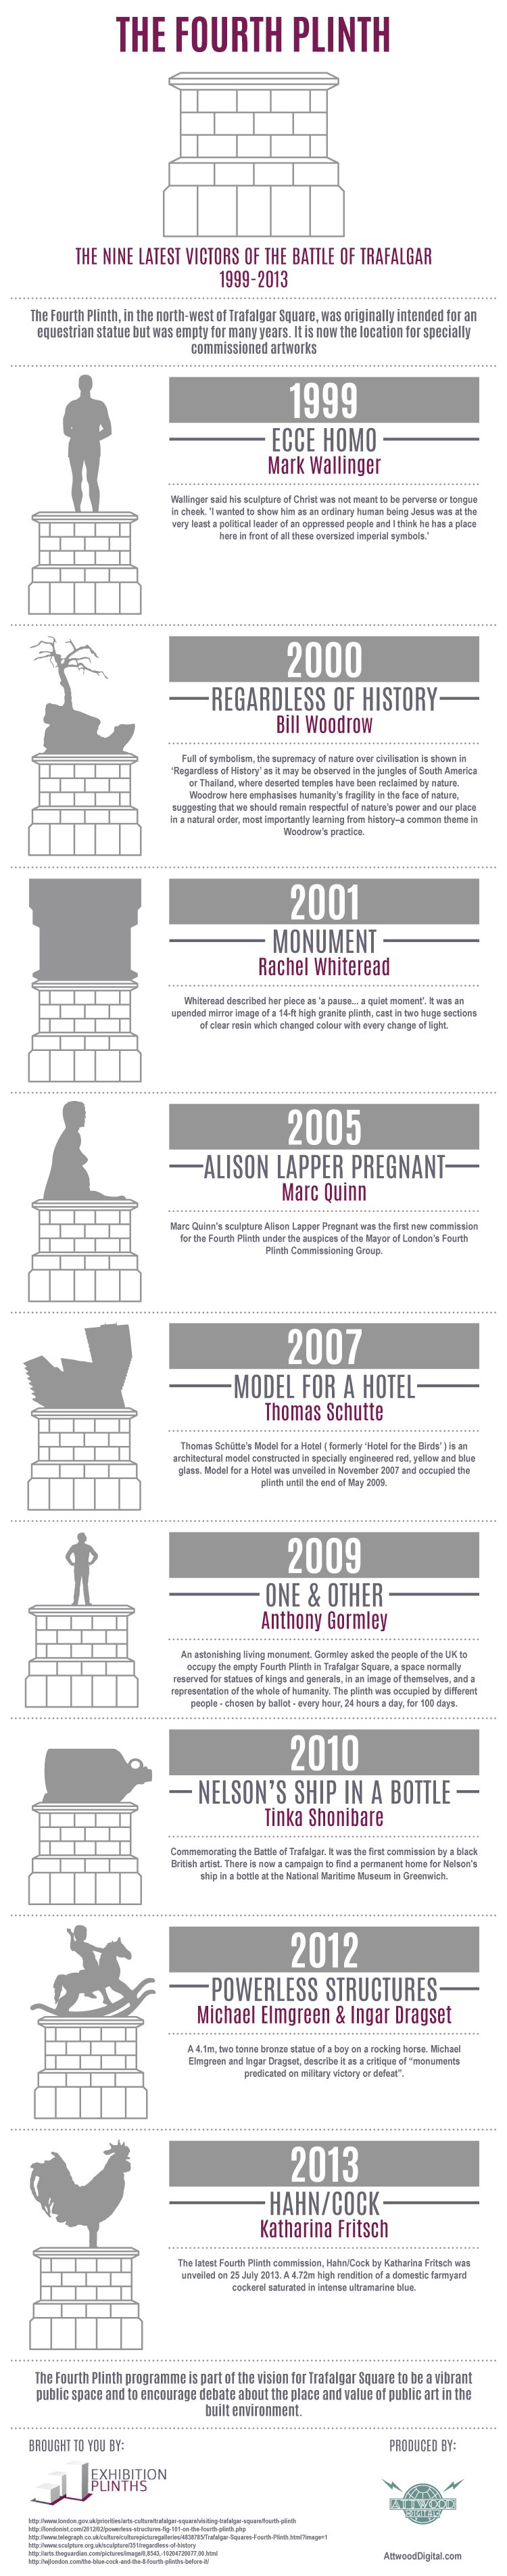 The_Fourth_Plinth_Infographic_Exhibition_Plinths